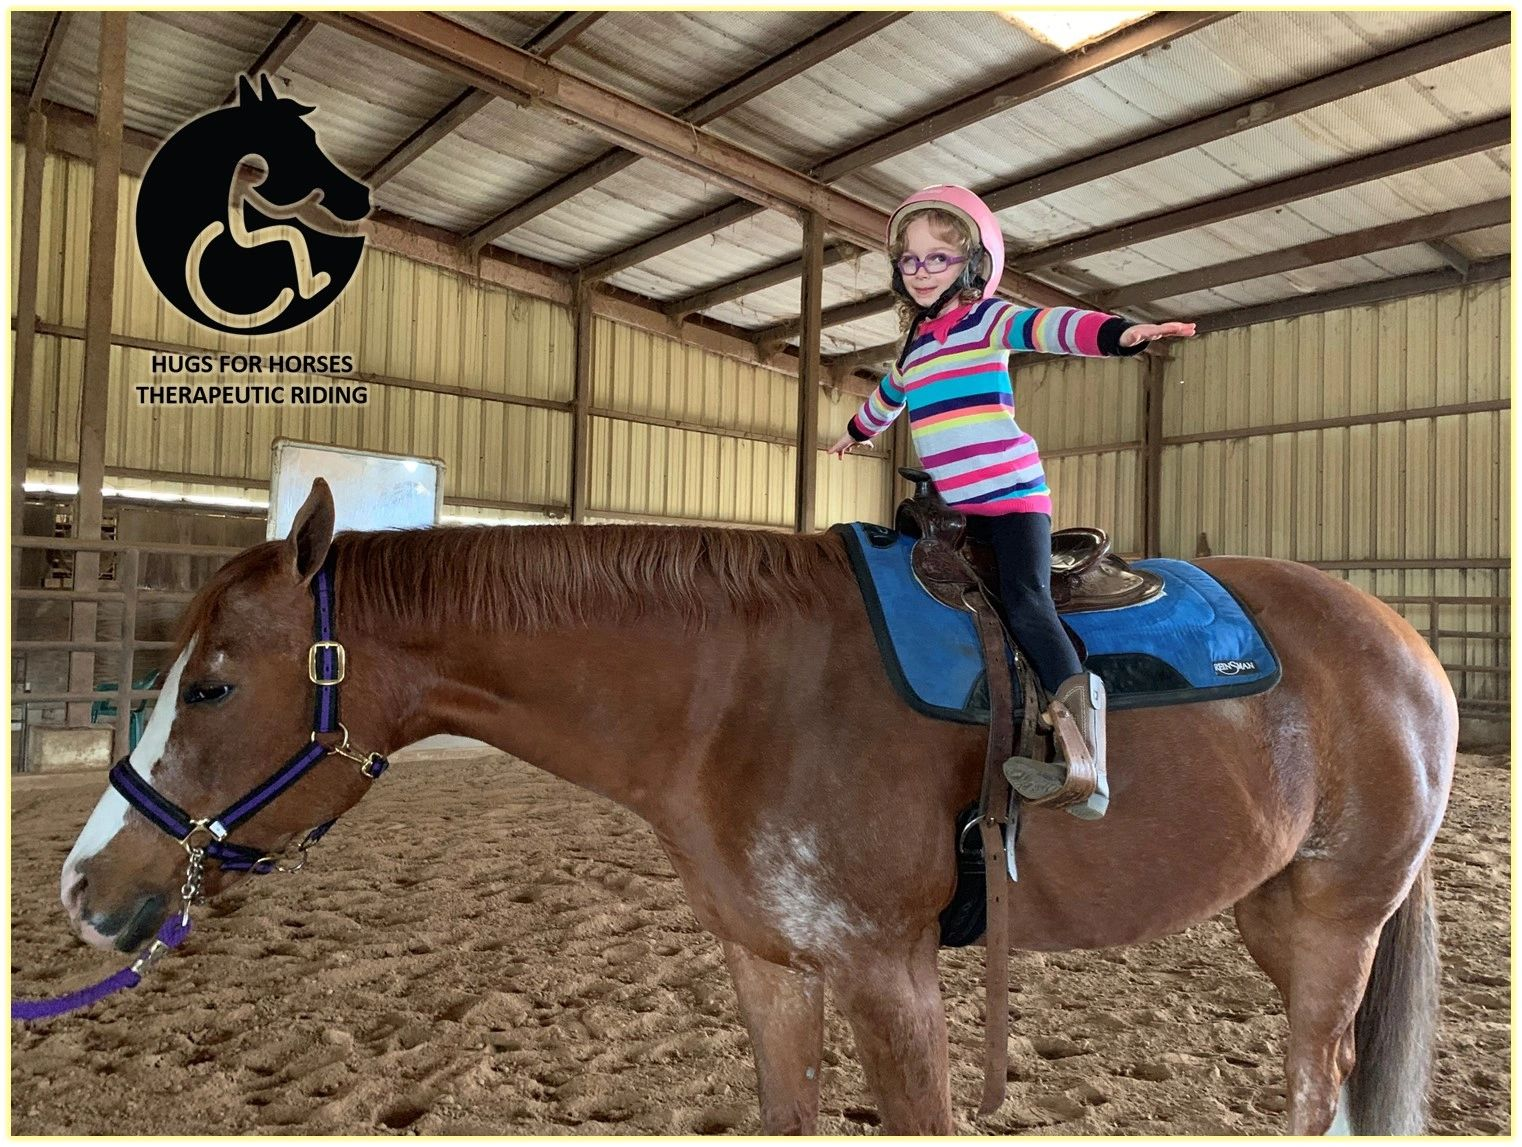 Child with disabilities learns new skills on her Hugs horse!